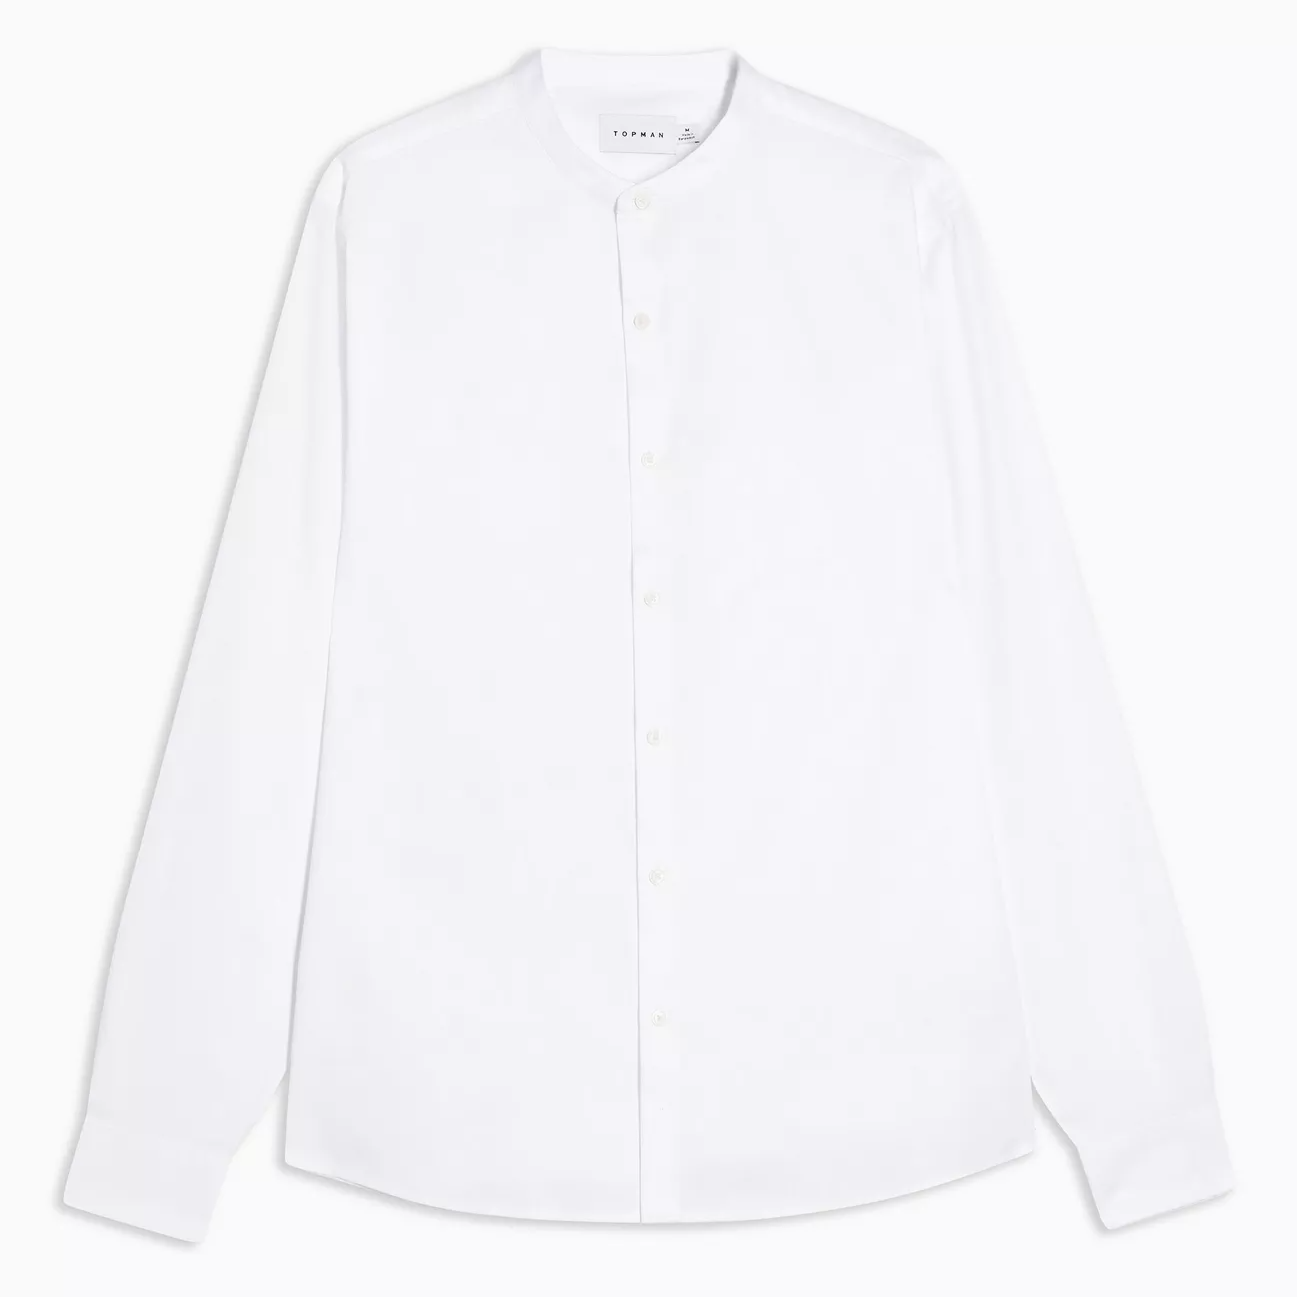 Topman white grandad collar slim shirt